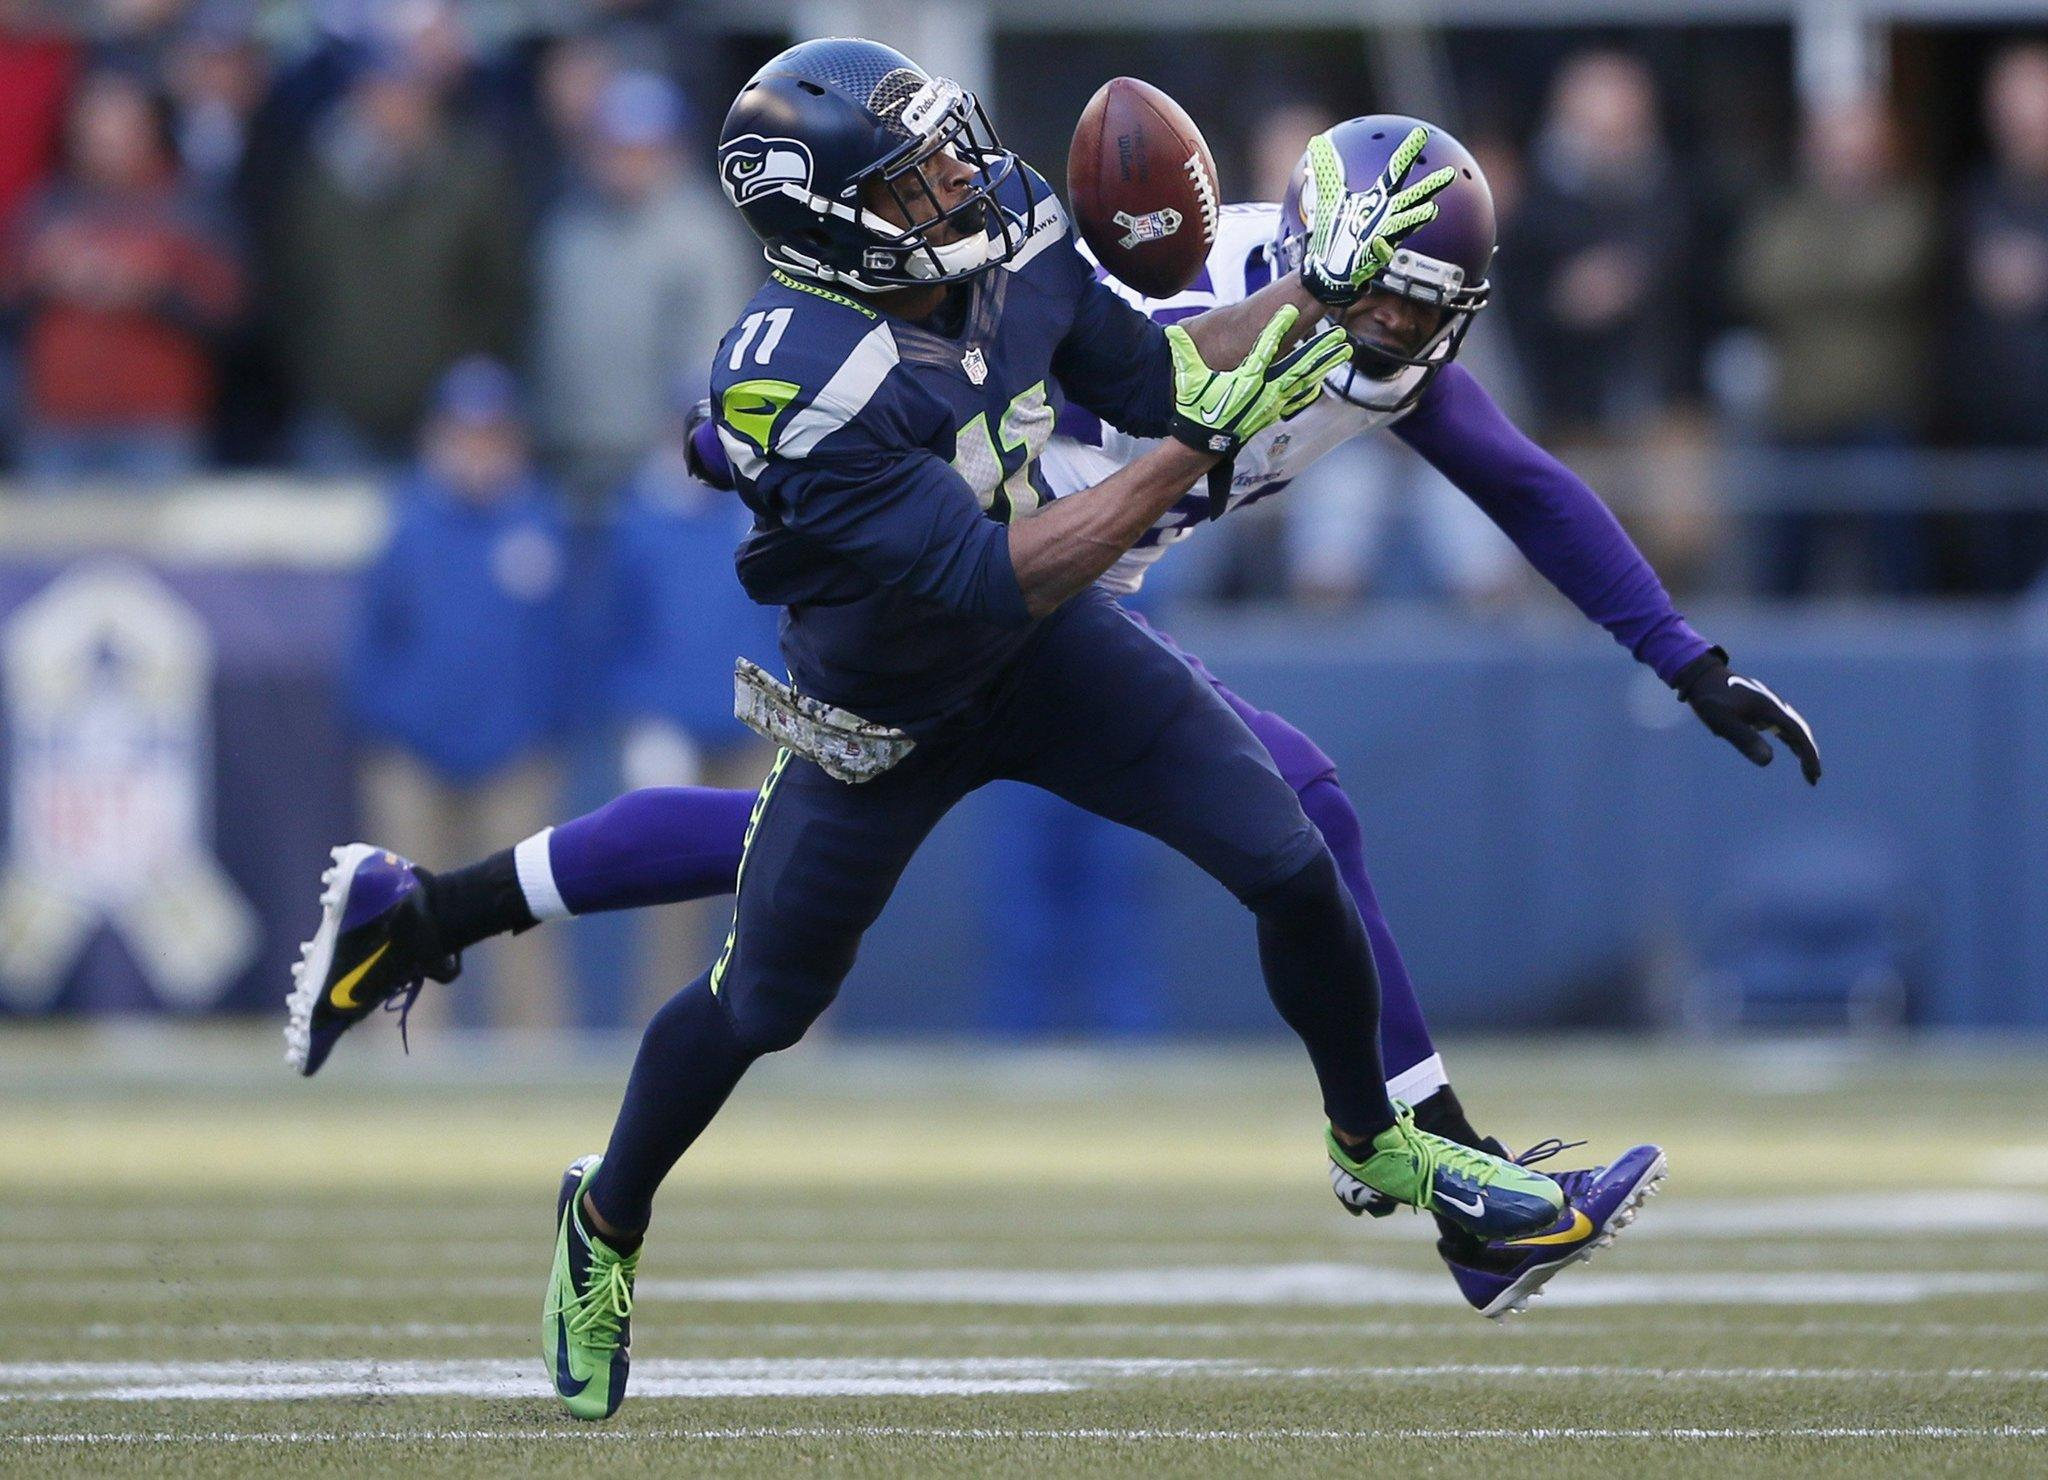 Percy Harvin of the Seattle Seahawks pulls down a catch against Chris Cook (20) of the Minnesota Vikings. It was his only reception of the season.